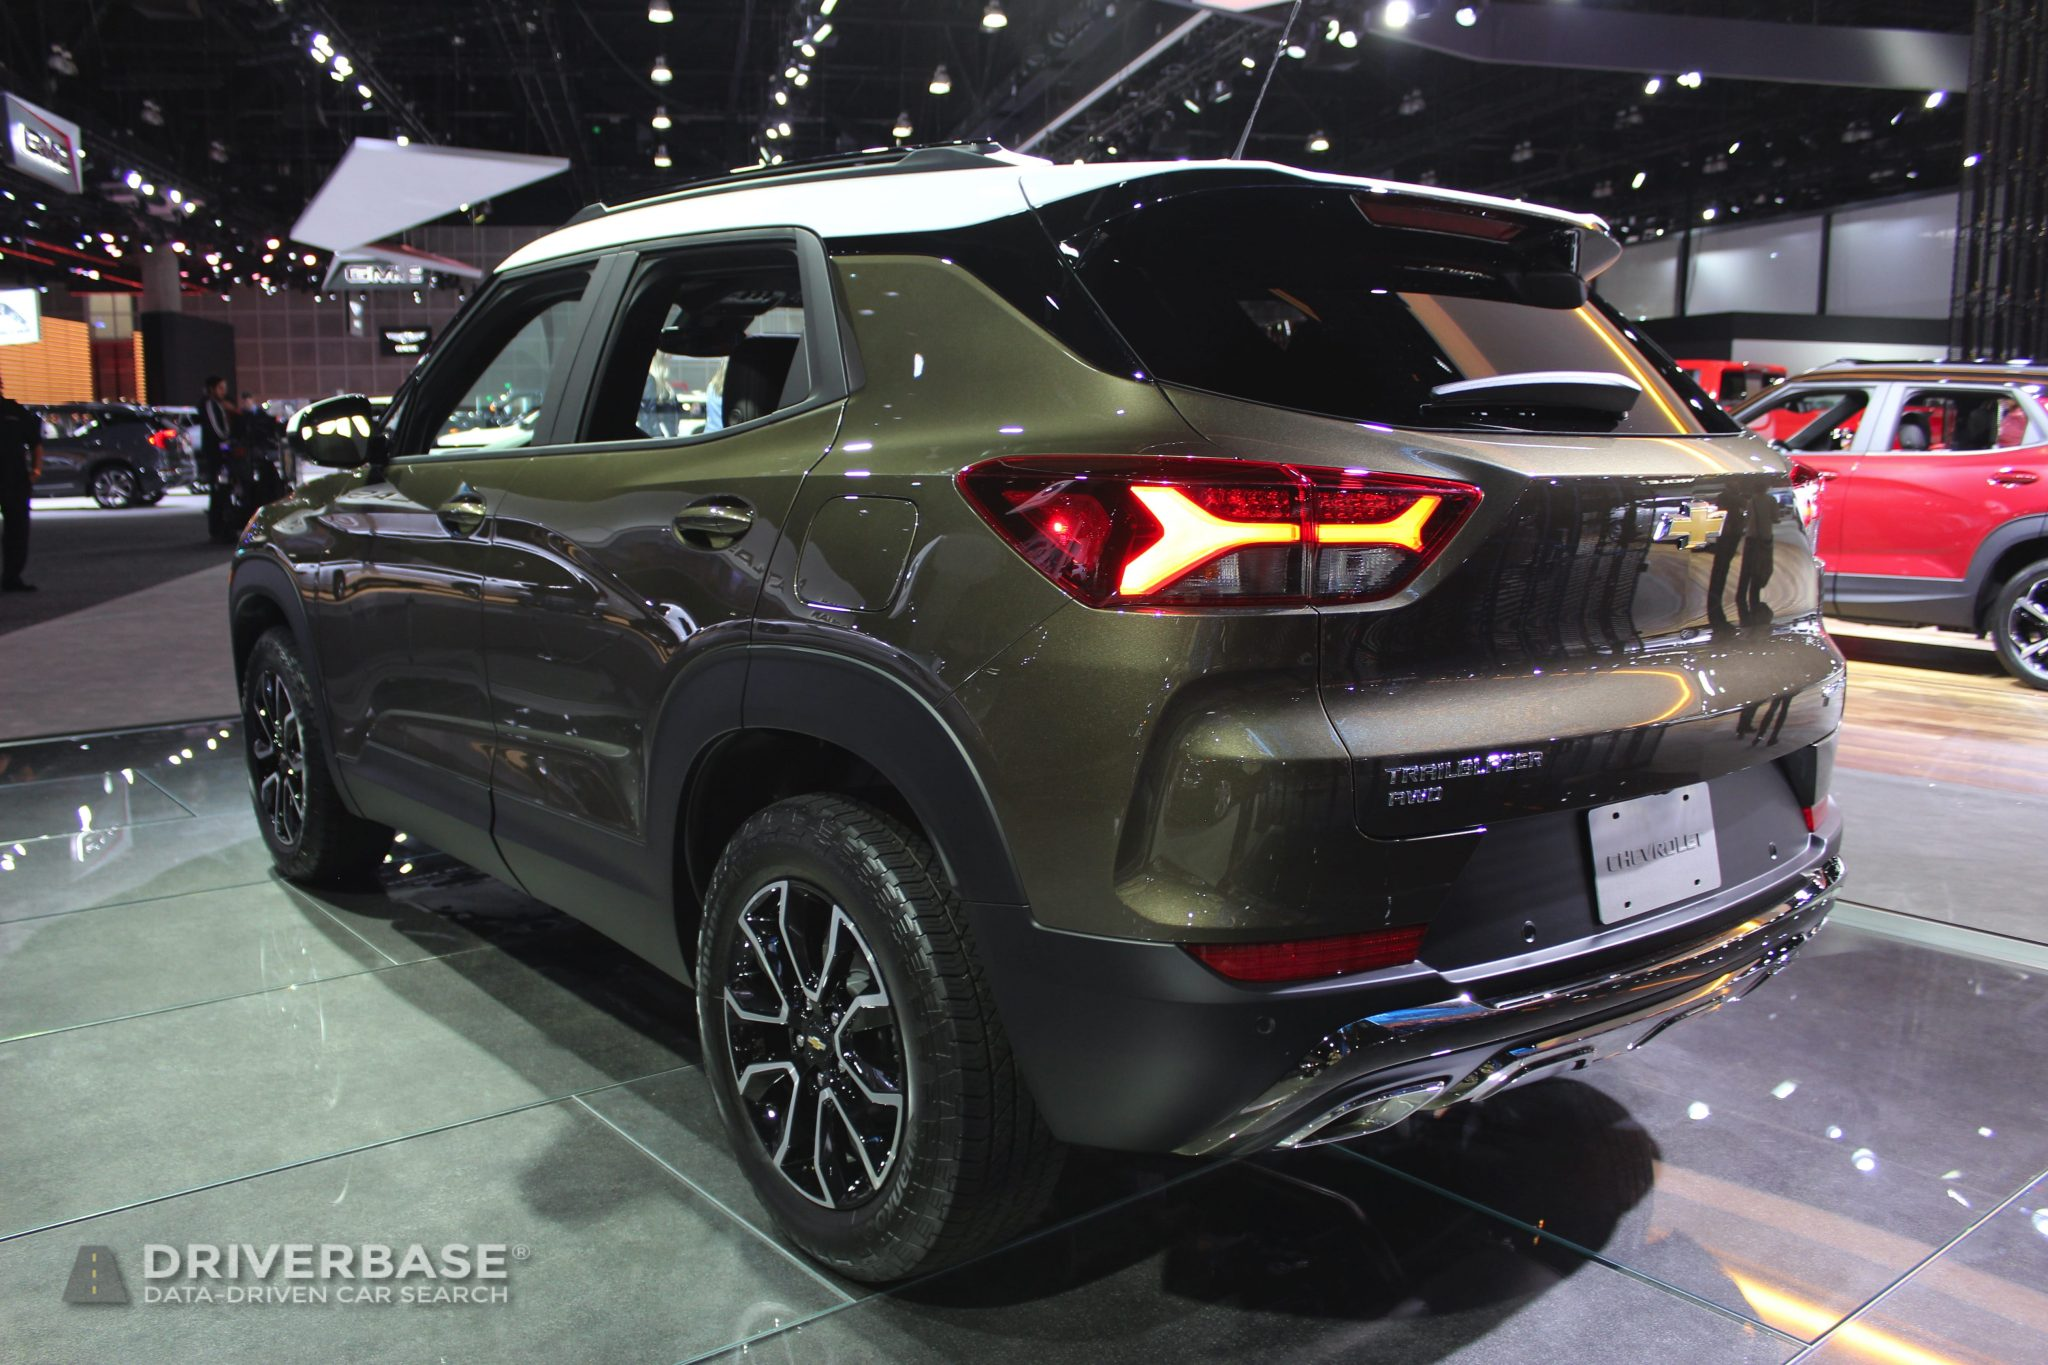 2020 Chevrolet Trailblazer at the 2019 Los Angeles Auto Show